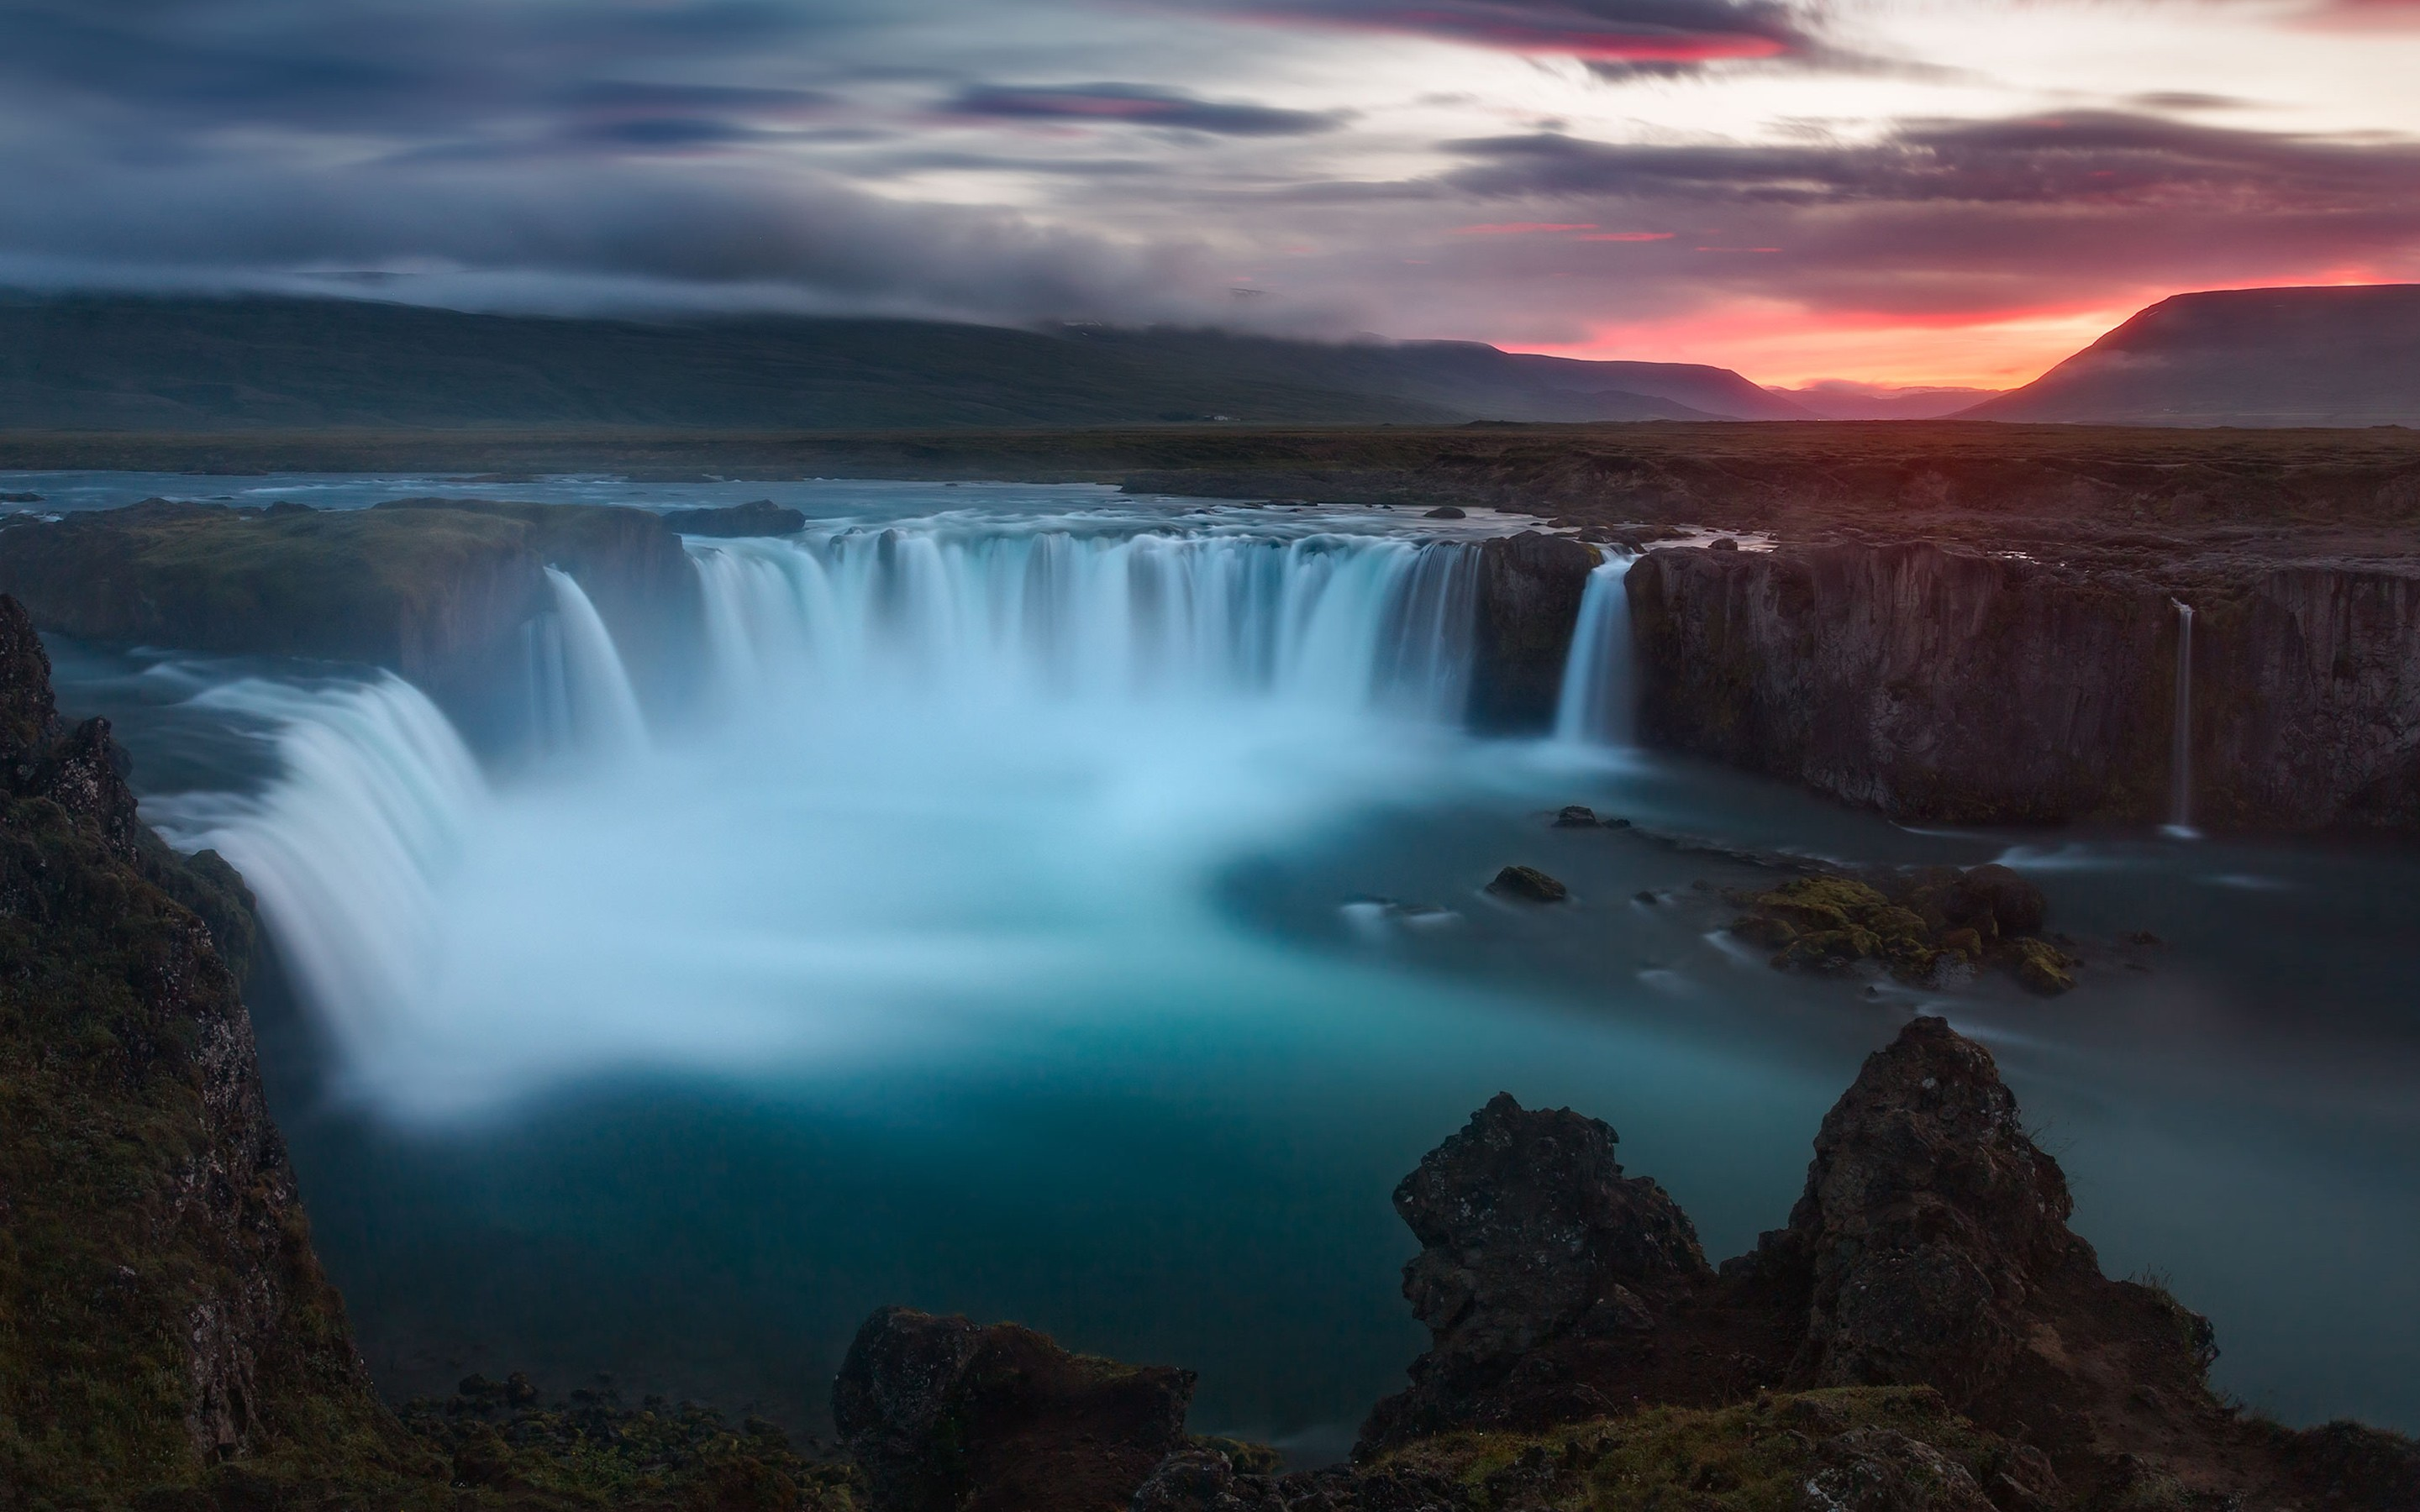 Cool Space Iphone Wallpaper Godafoss Waterfalls Iceland Wallpapers Hd Wallpapers